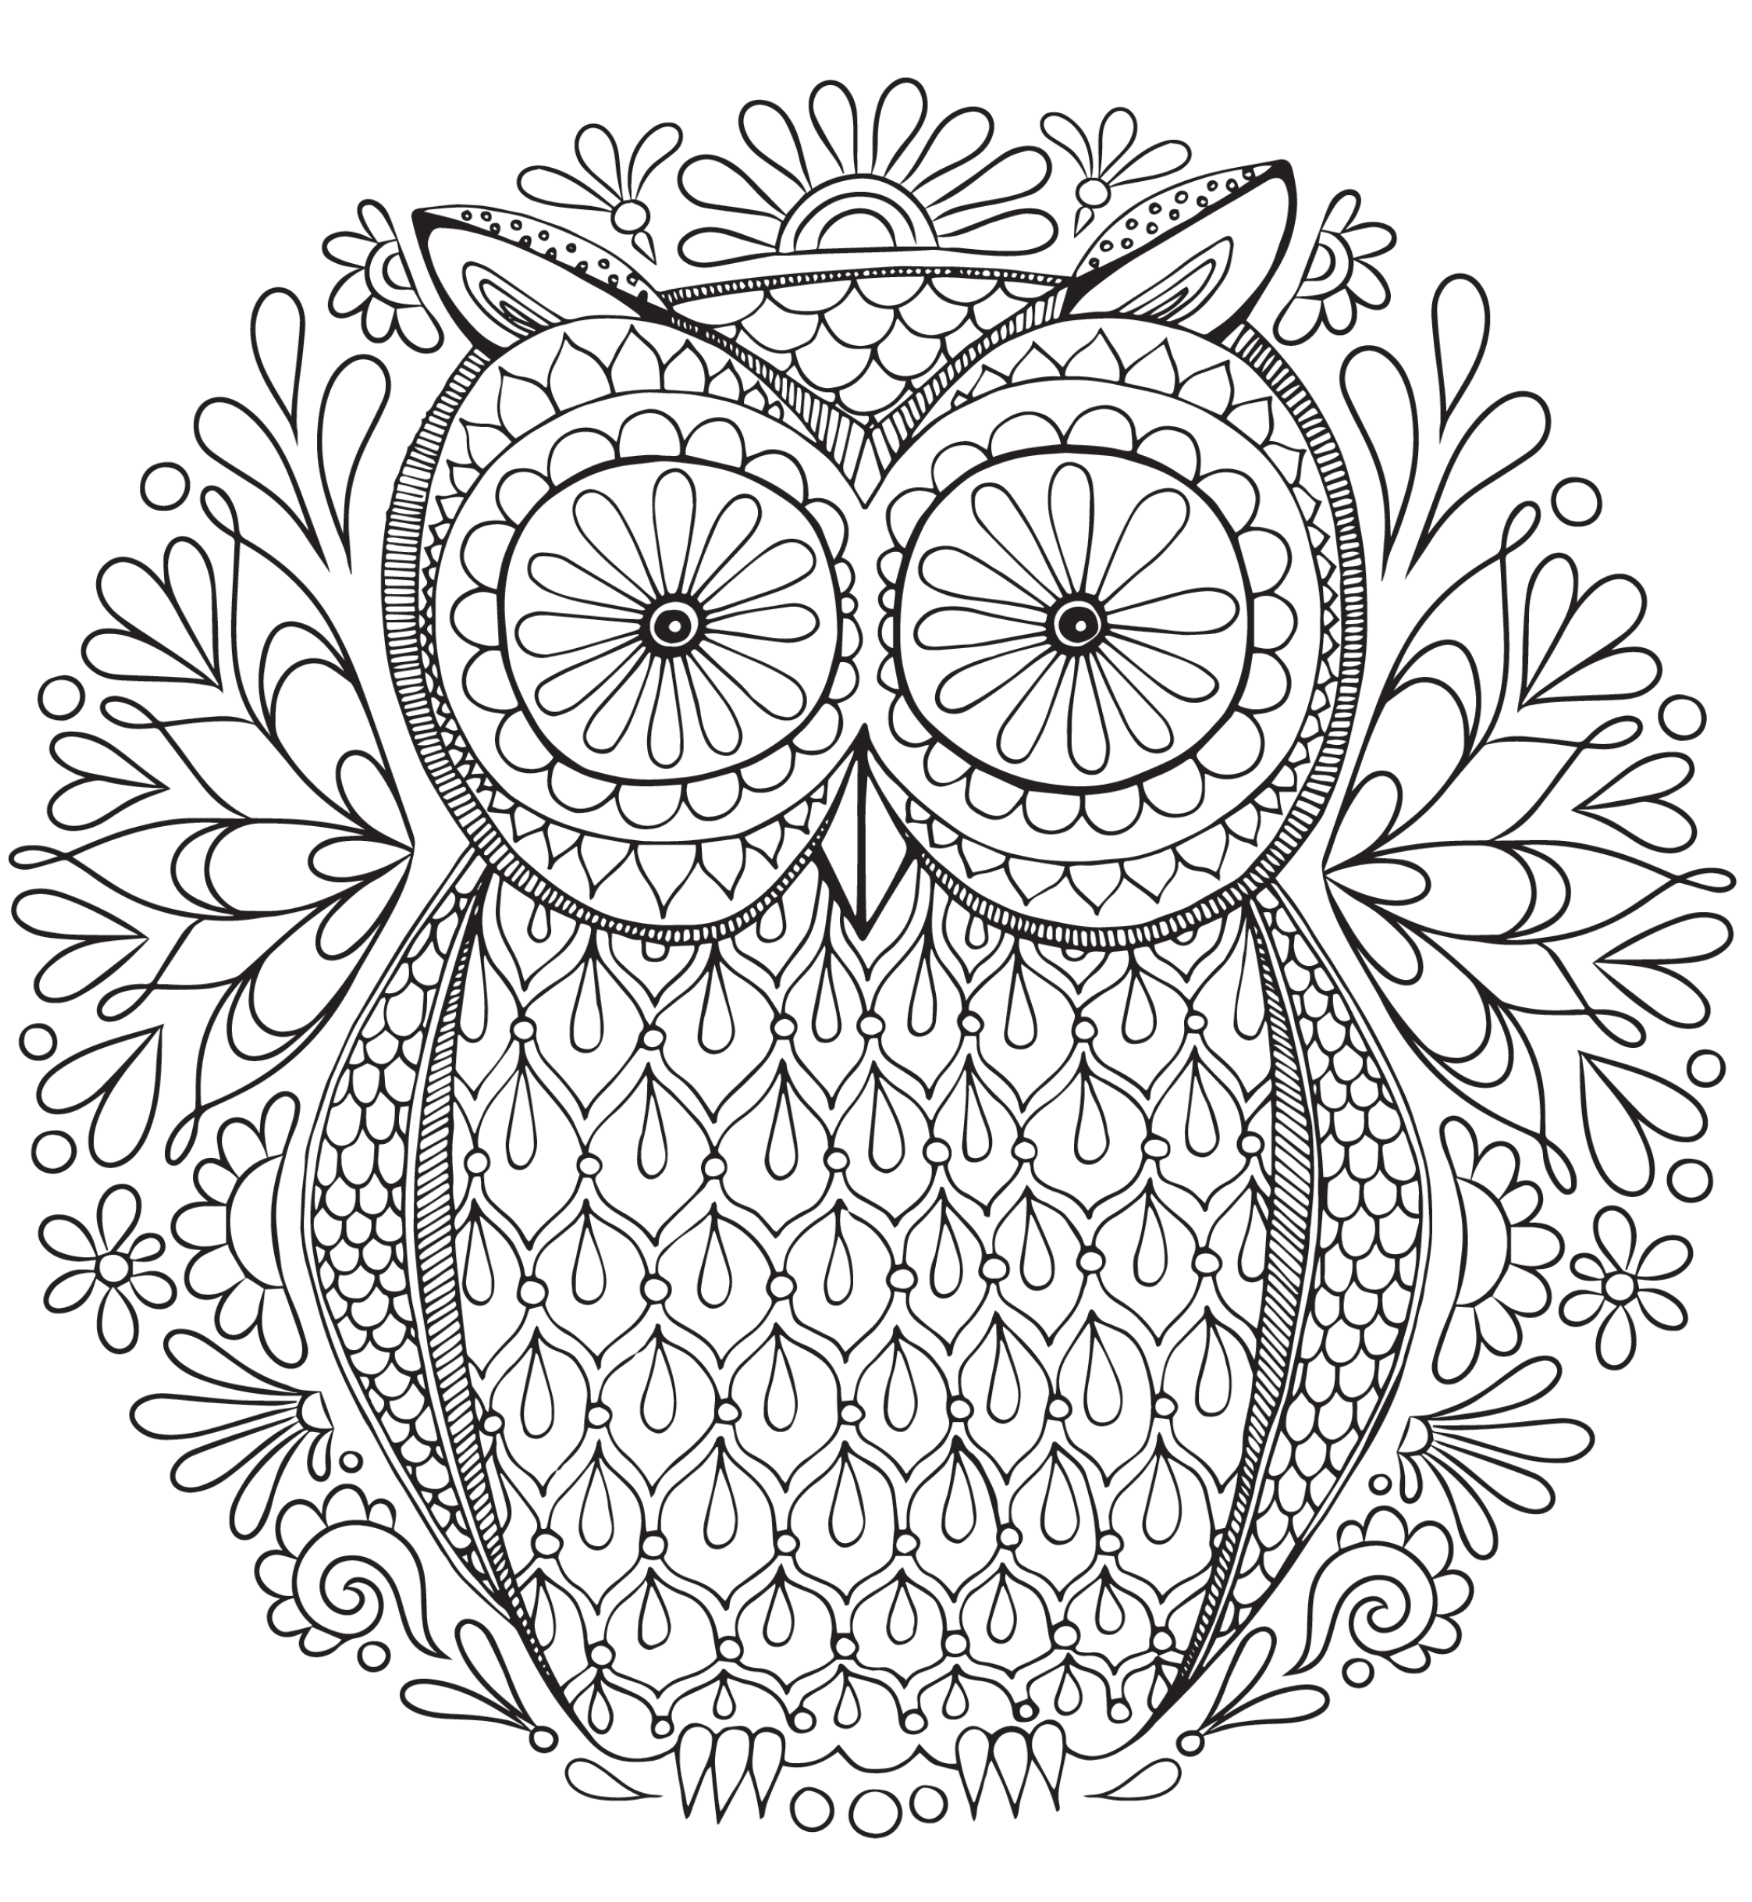 20 free adult colouring pages the organised housewife for Free printable abstract coloring pages